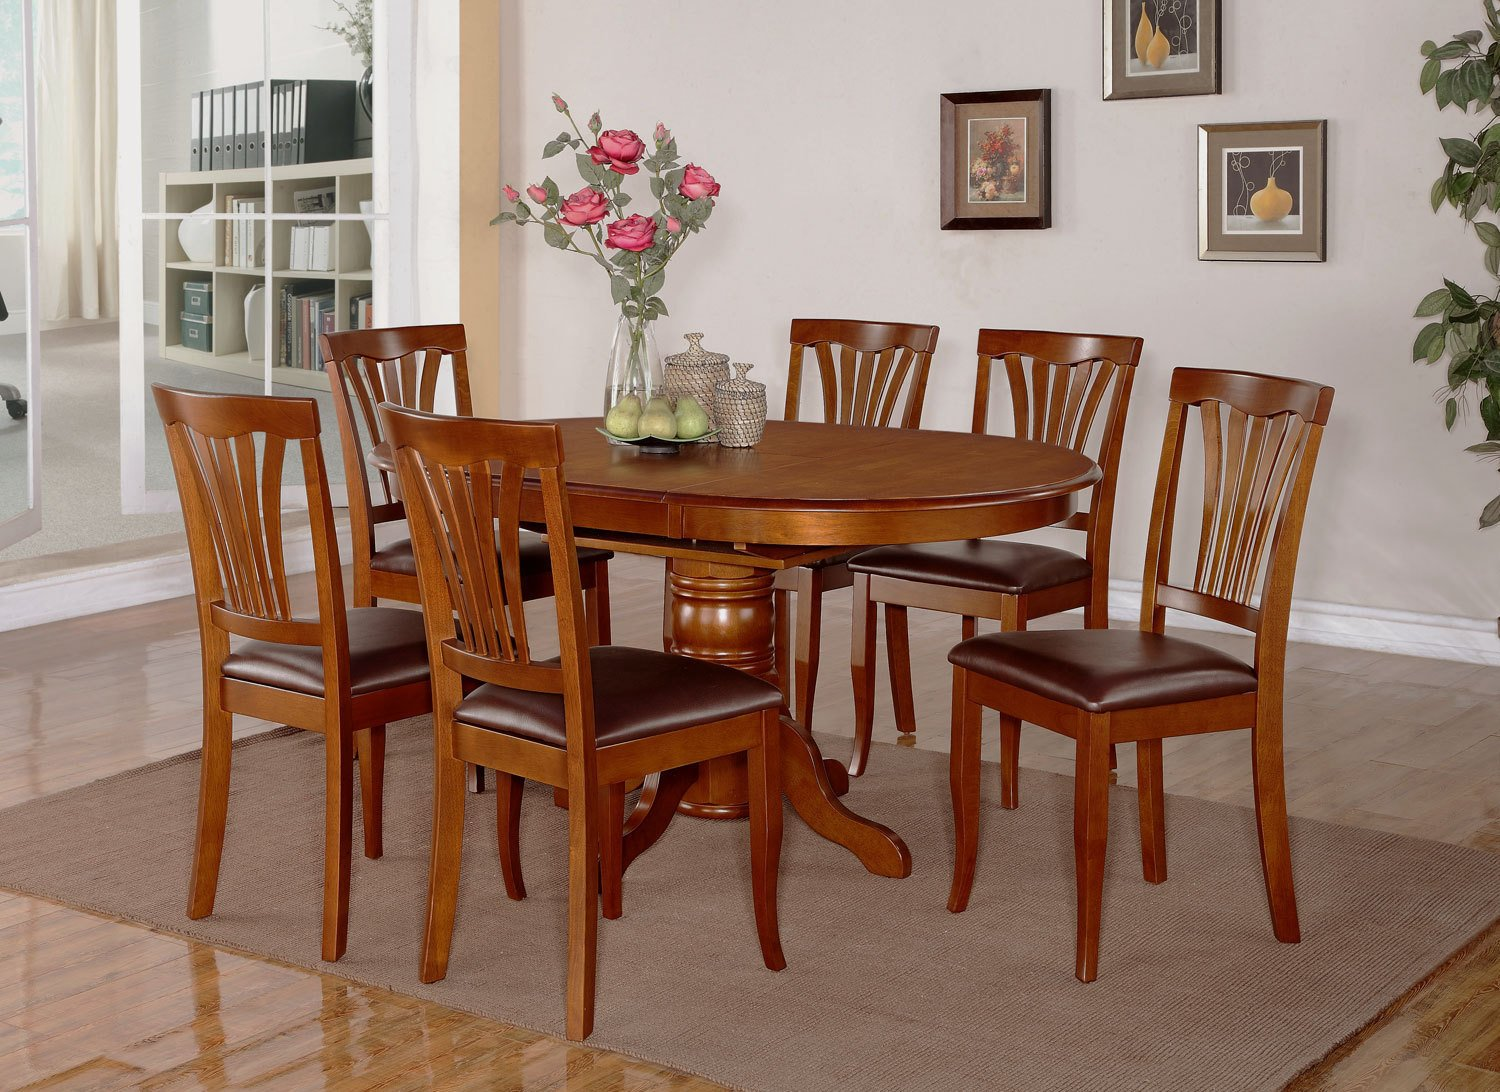 Image of: oval upholstered dining chair